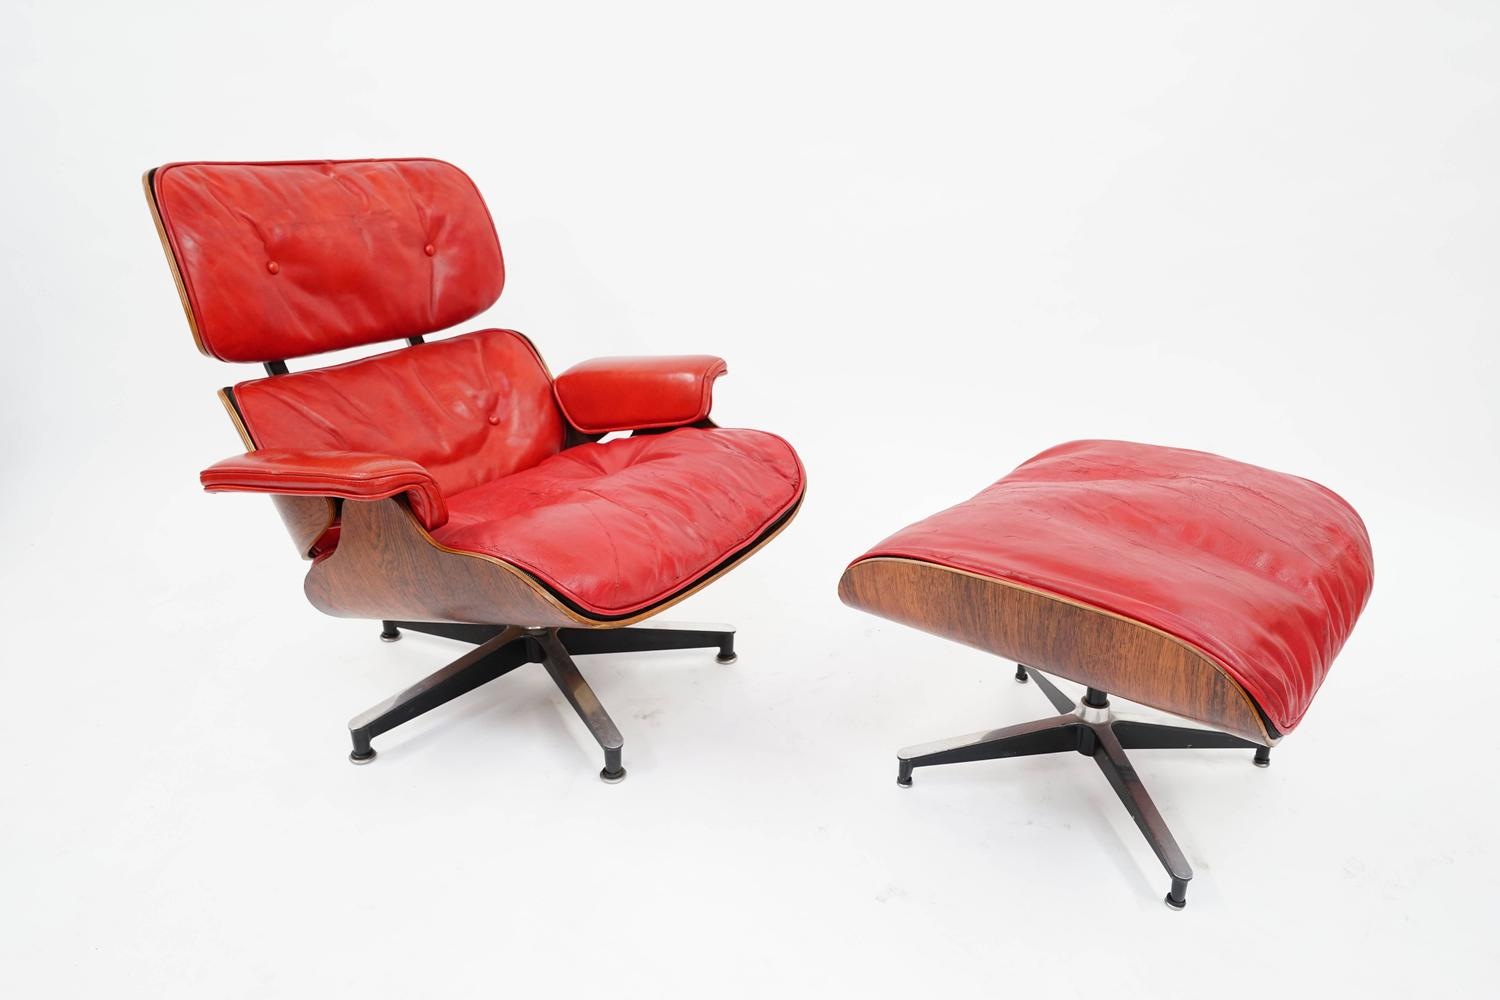 rare pepsi red eames lounge chair by herman miller for pepsi co a